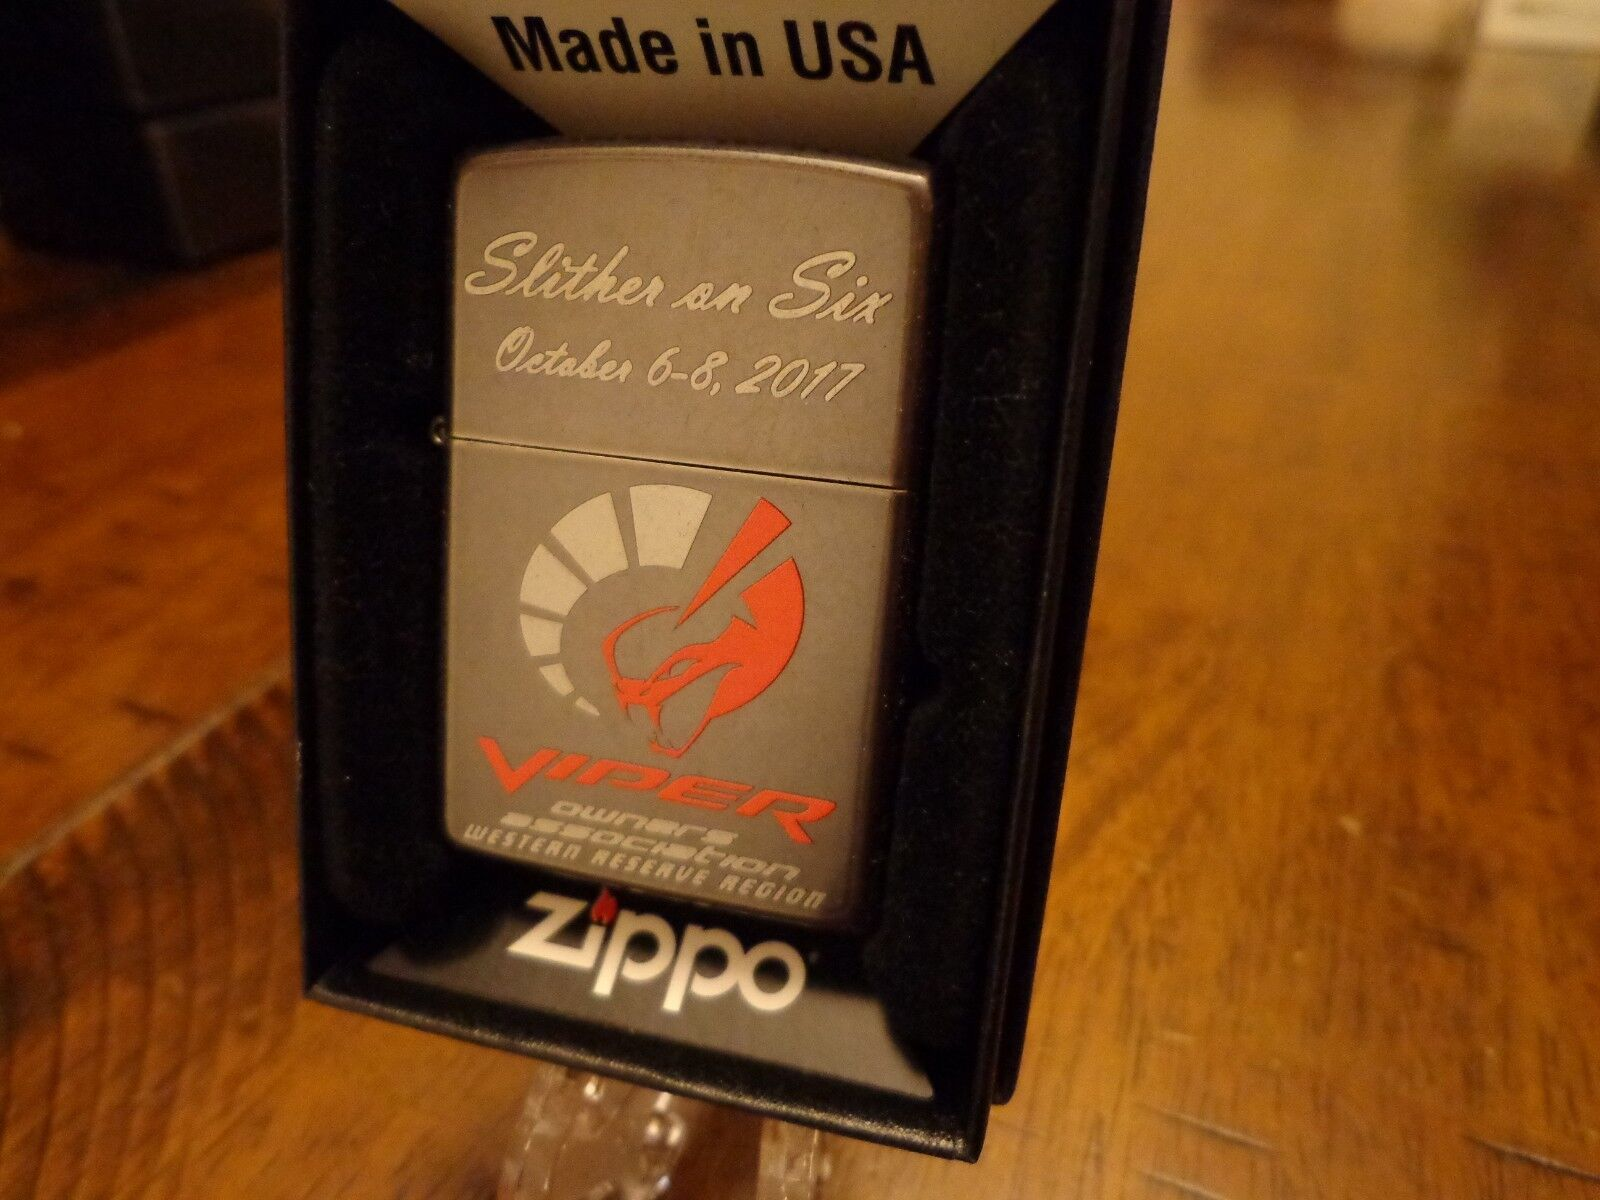 DODGE VIPER SLITHER ON SIX ZIPPO LIGHTER MINT IN BOX 2017